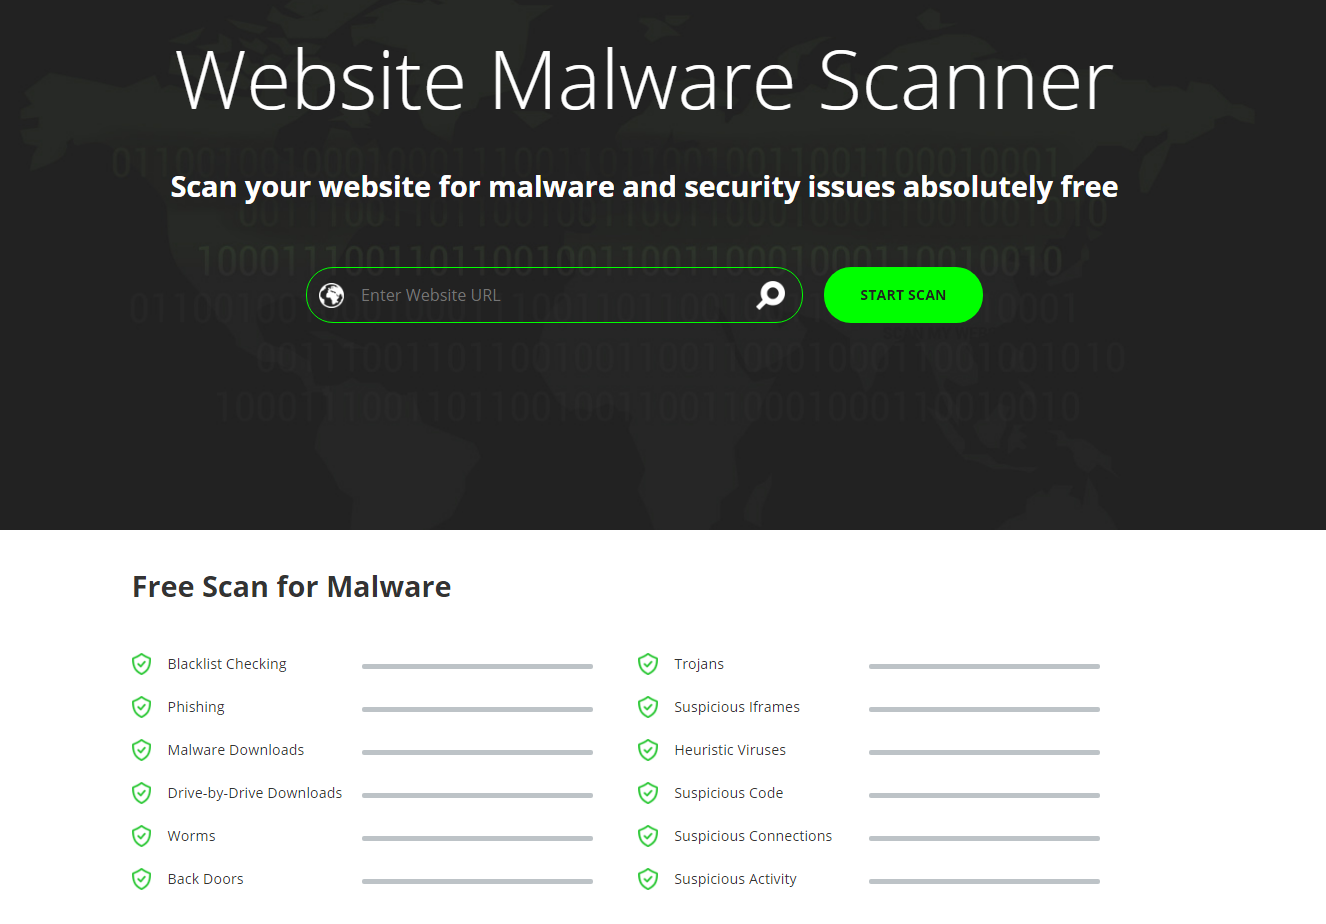 19 Awesome Free Tools To Check & Scan WordPress